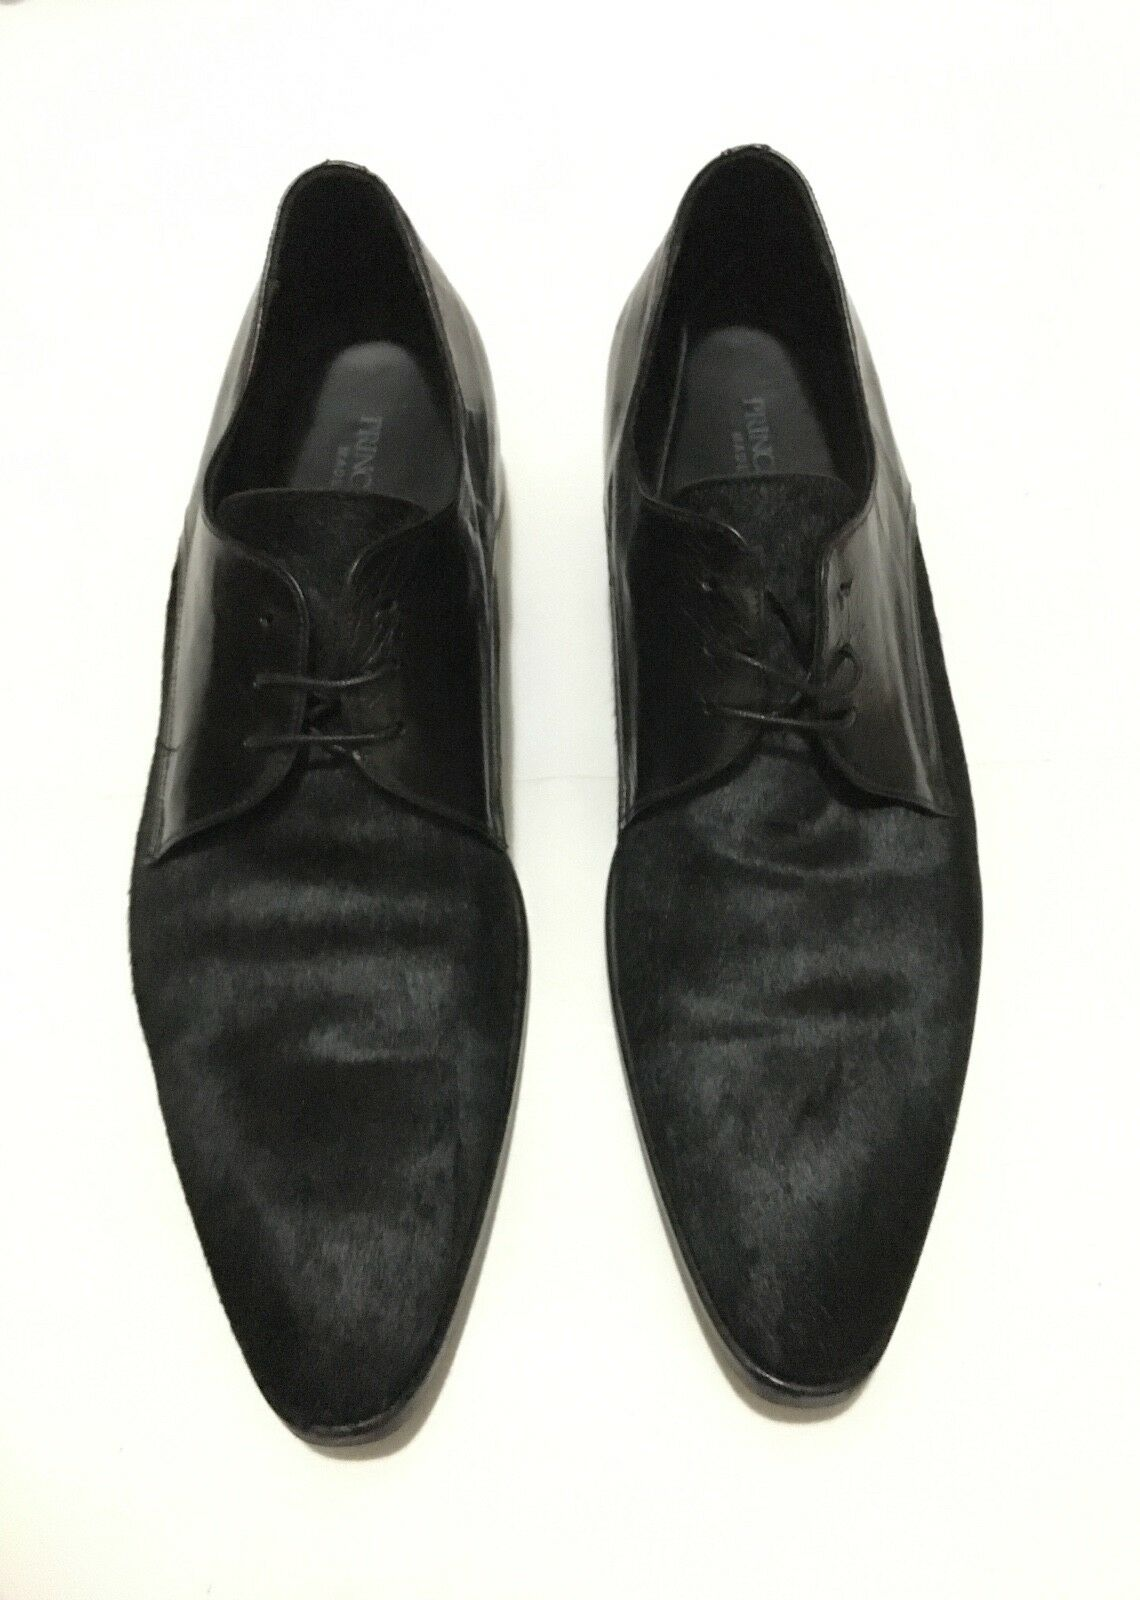 Prince Oliver Black black Pony Leather Dress Oxford Derby shoes EU41 UK7.5